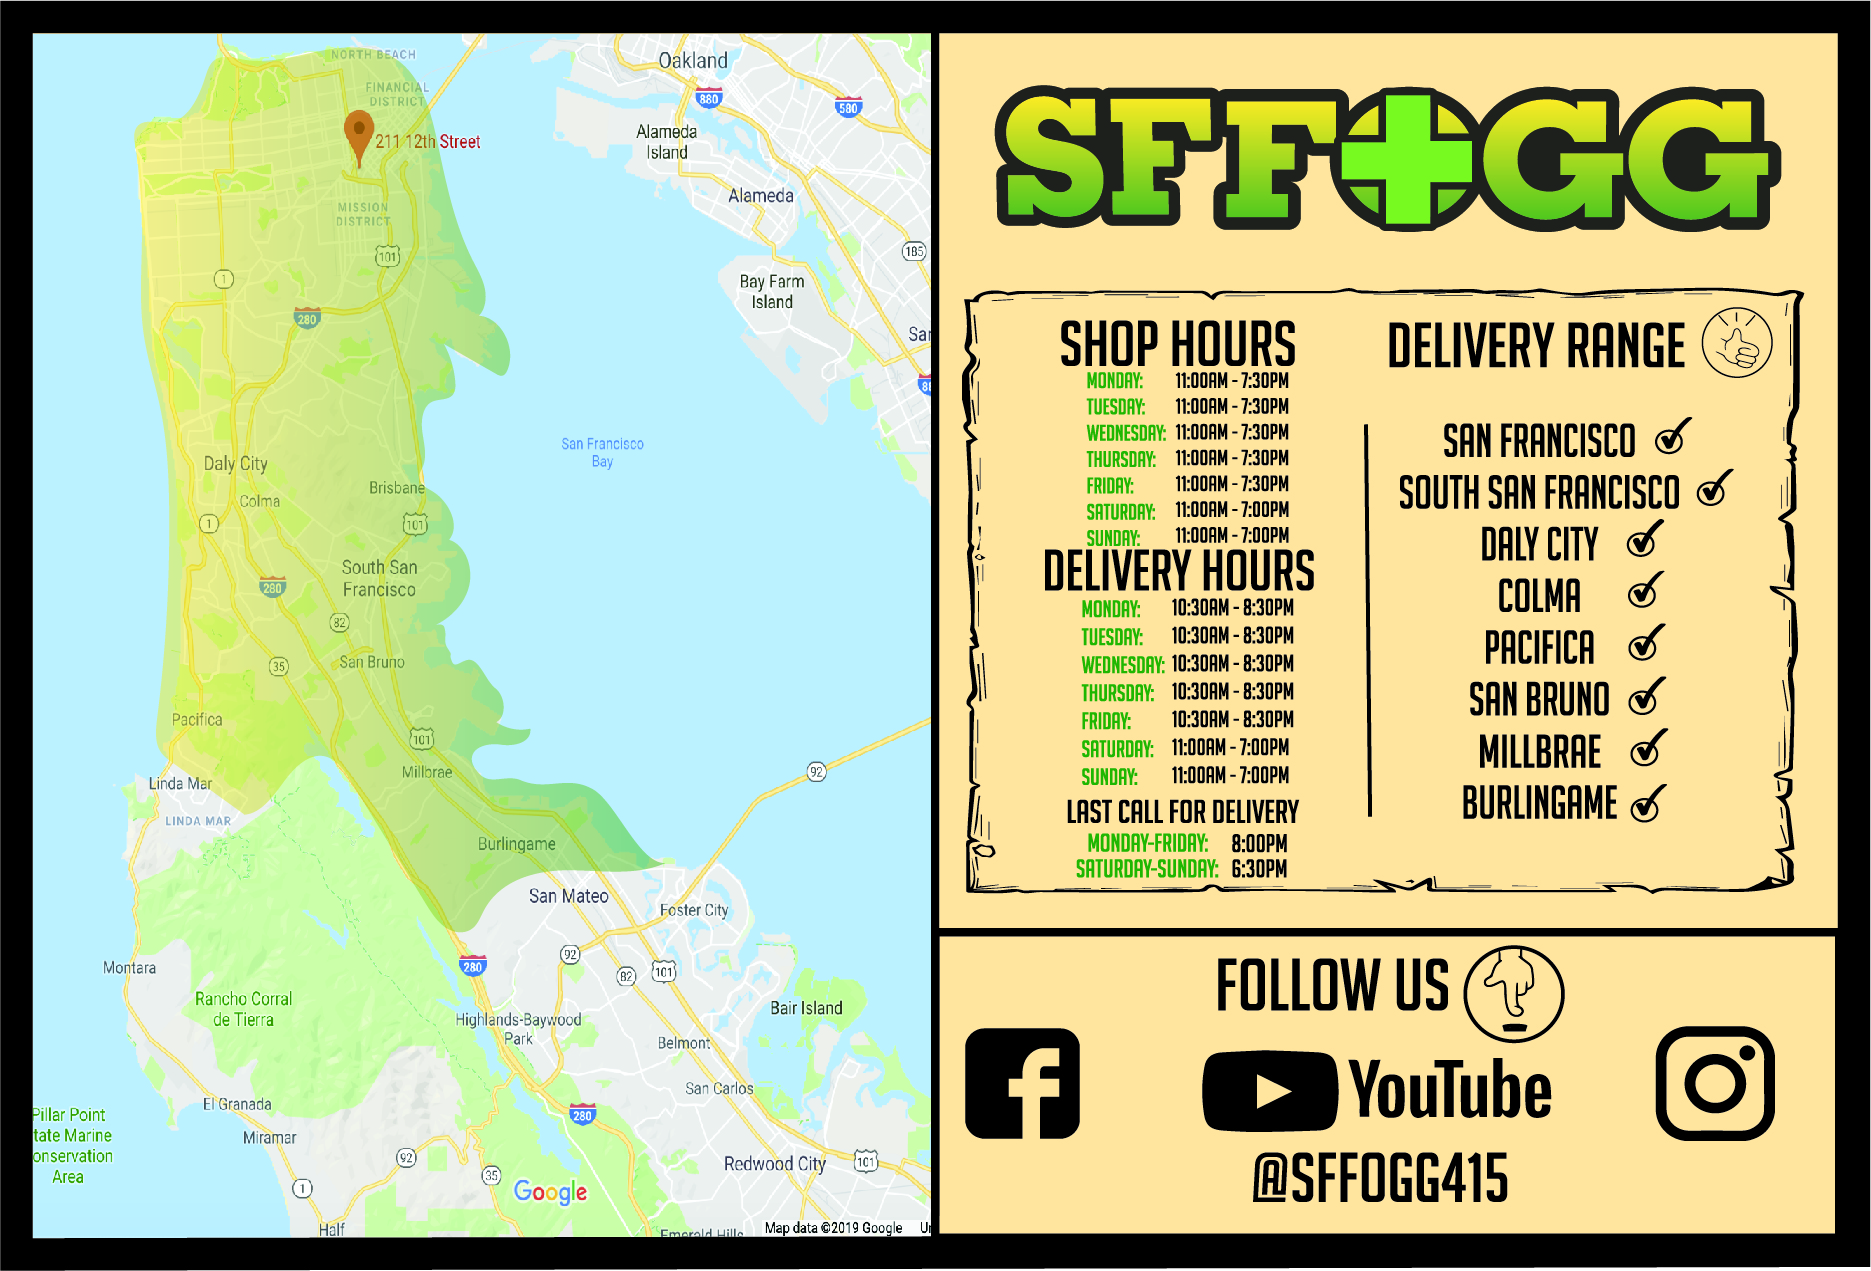 Bay Area Cannabis Delivery — SFFOGG Cannabis Retail and Delivery Bay